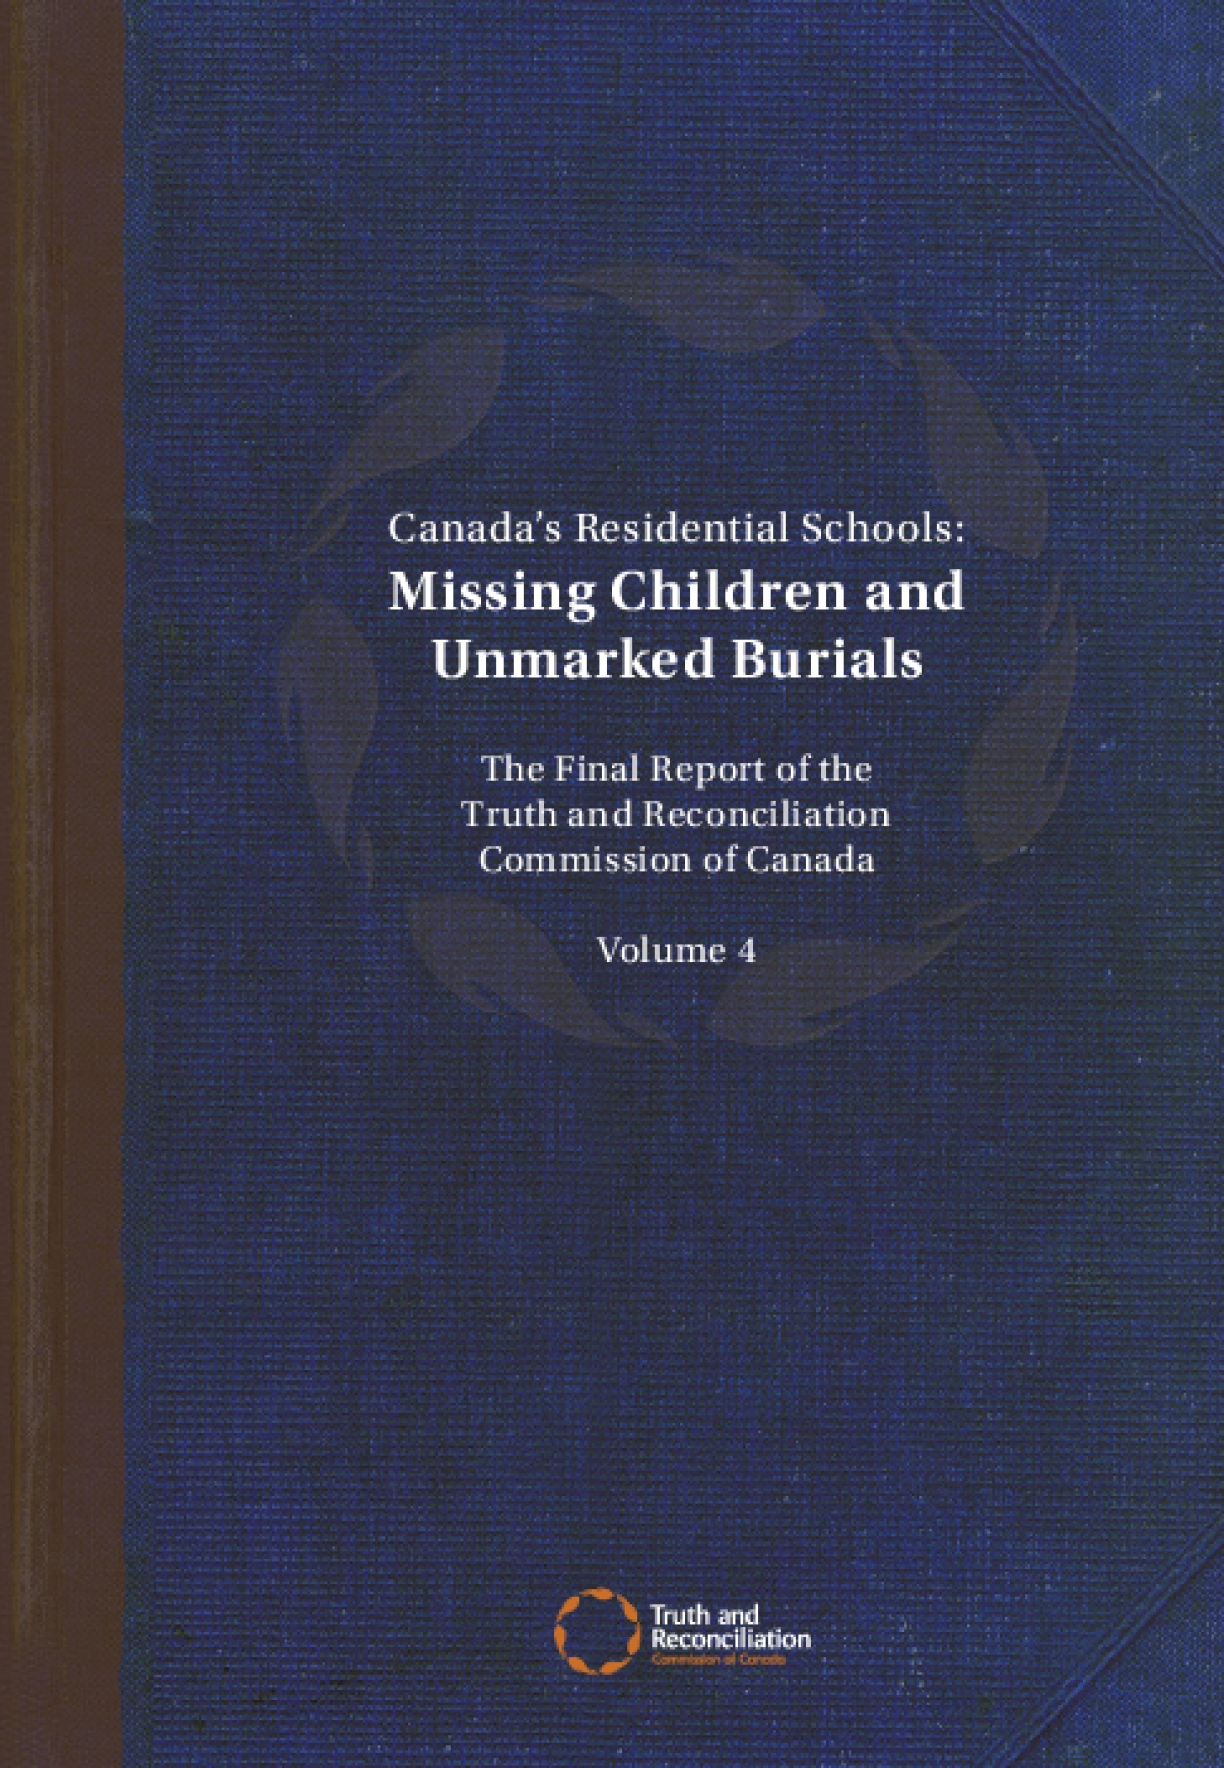 Canada's Residential Schools: Missing Children and Unmarked Burials